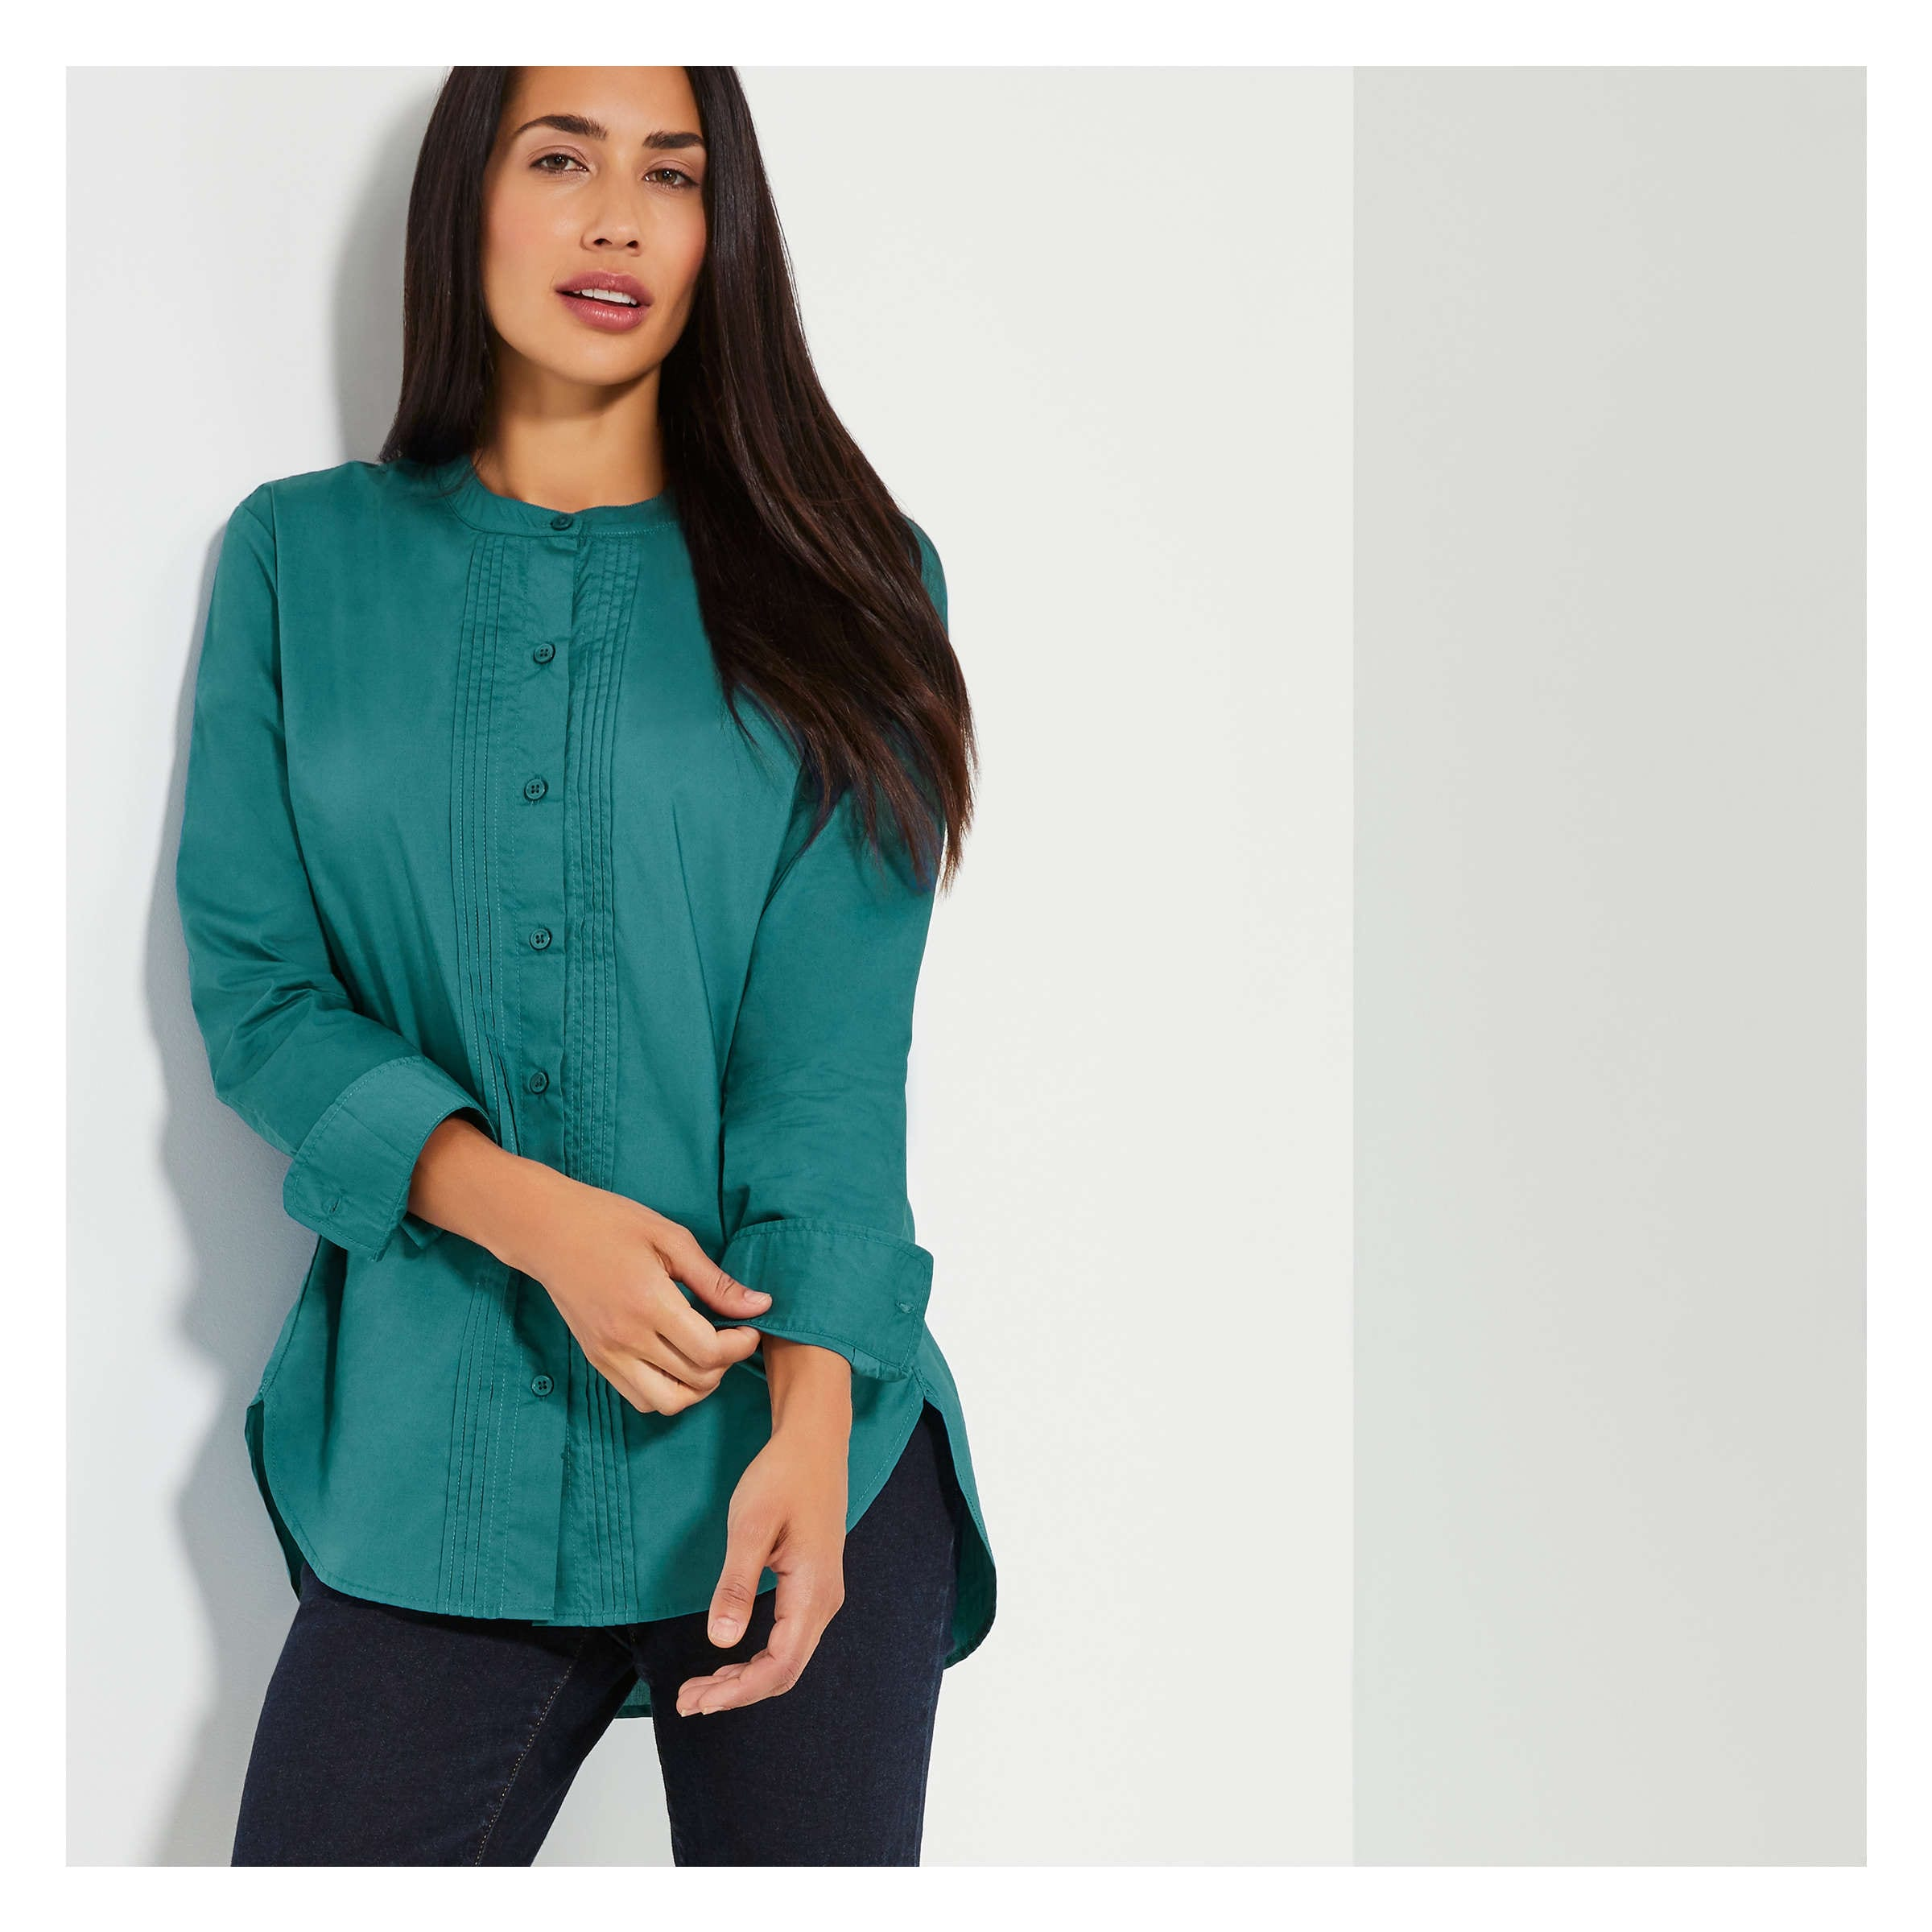 Pleat Front Shirt by Joe Fresh